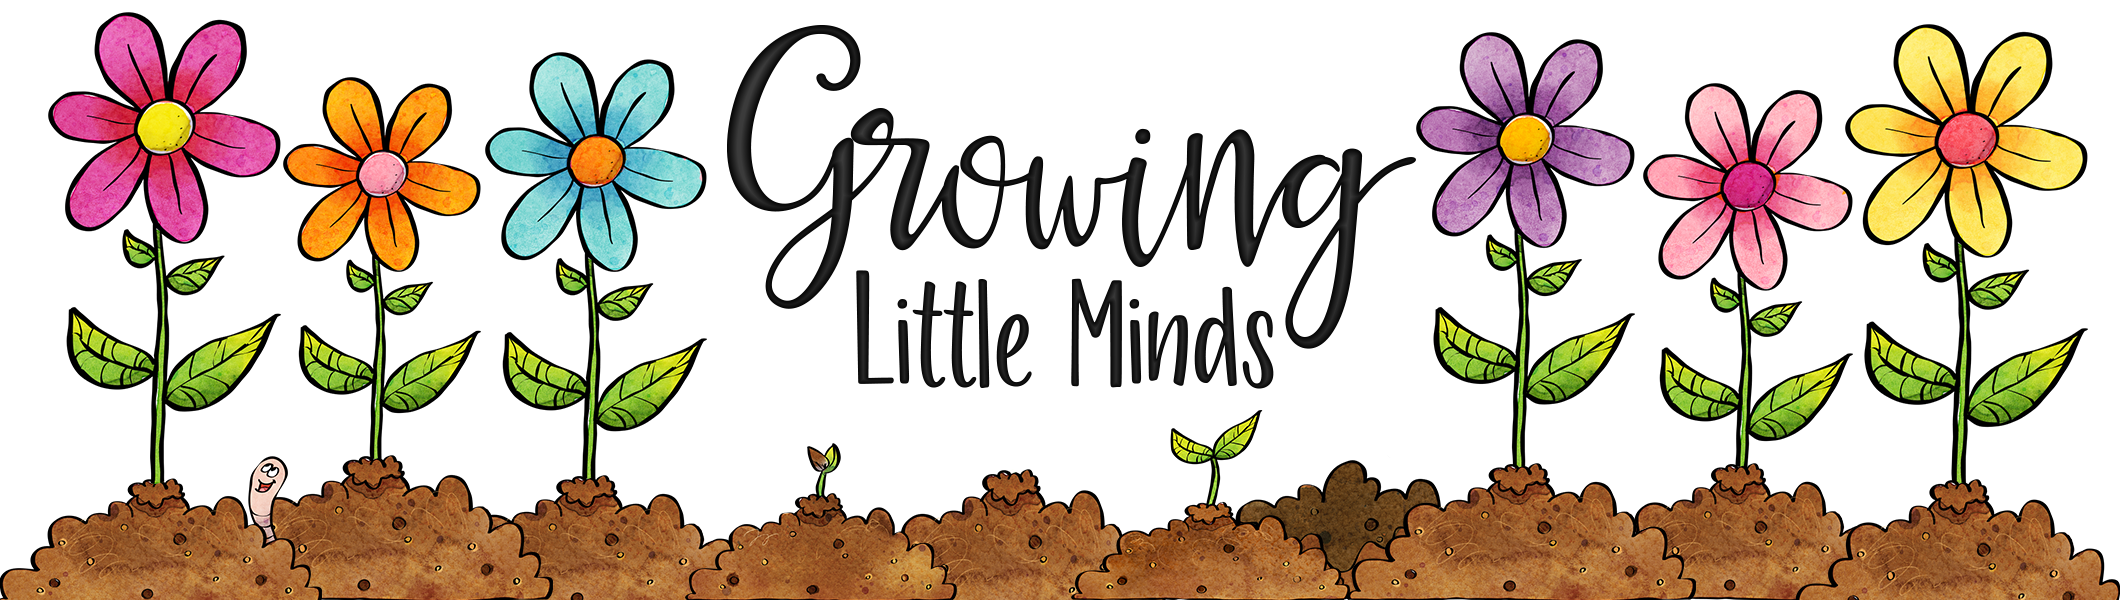 Growing Little Minds